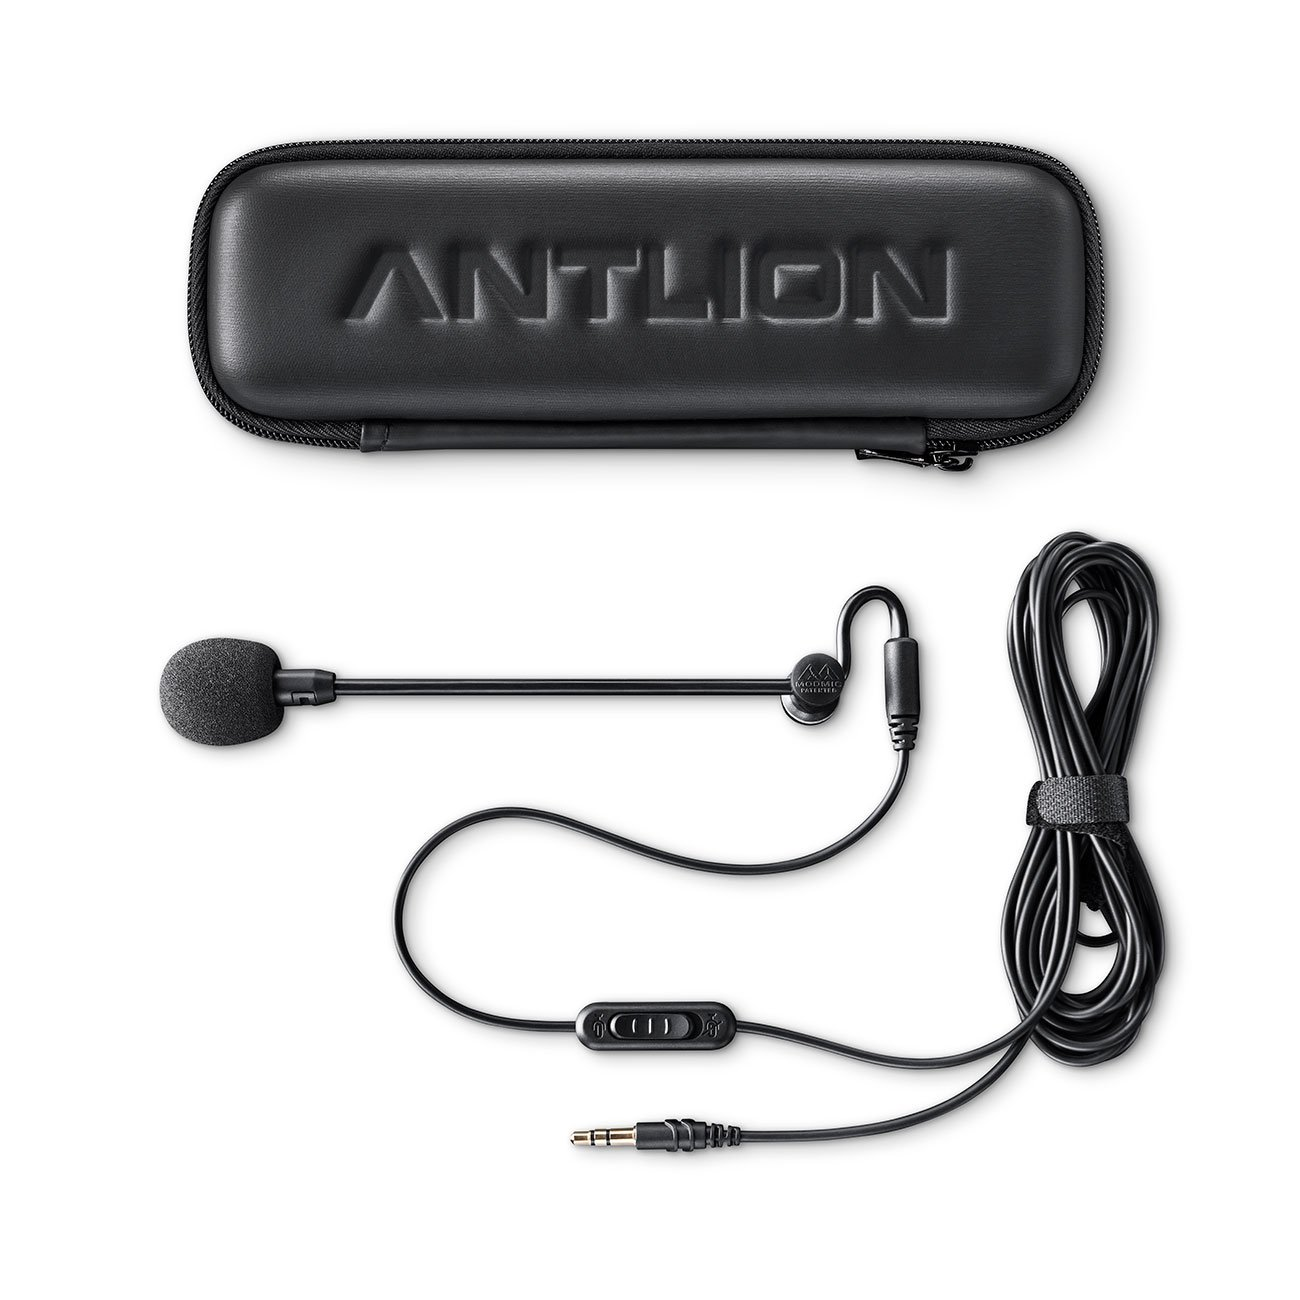 microfono con mute switch Antlion Audio ModMic